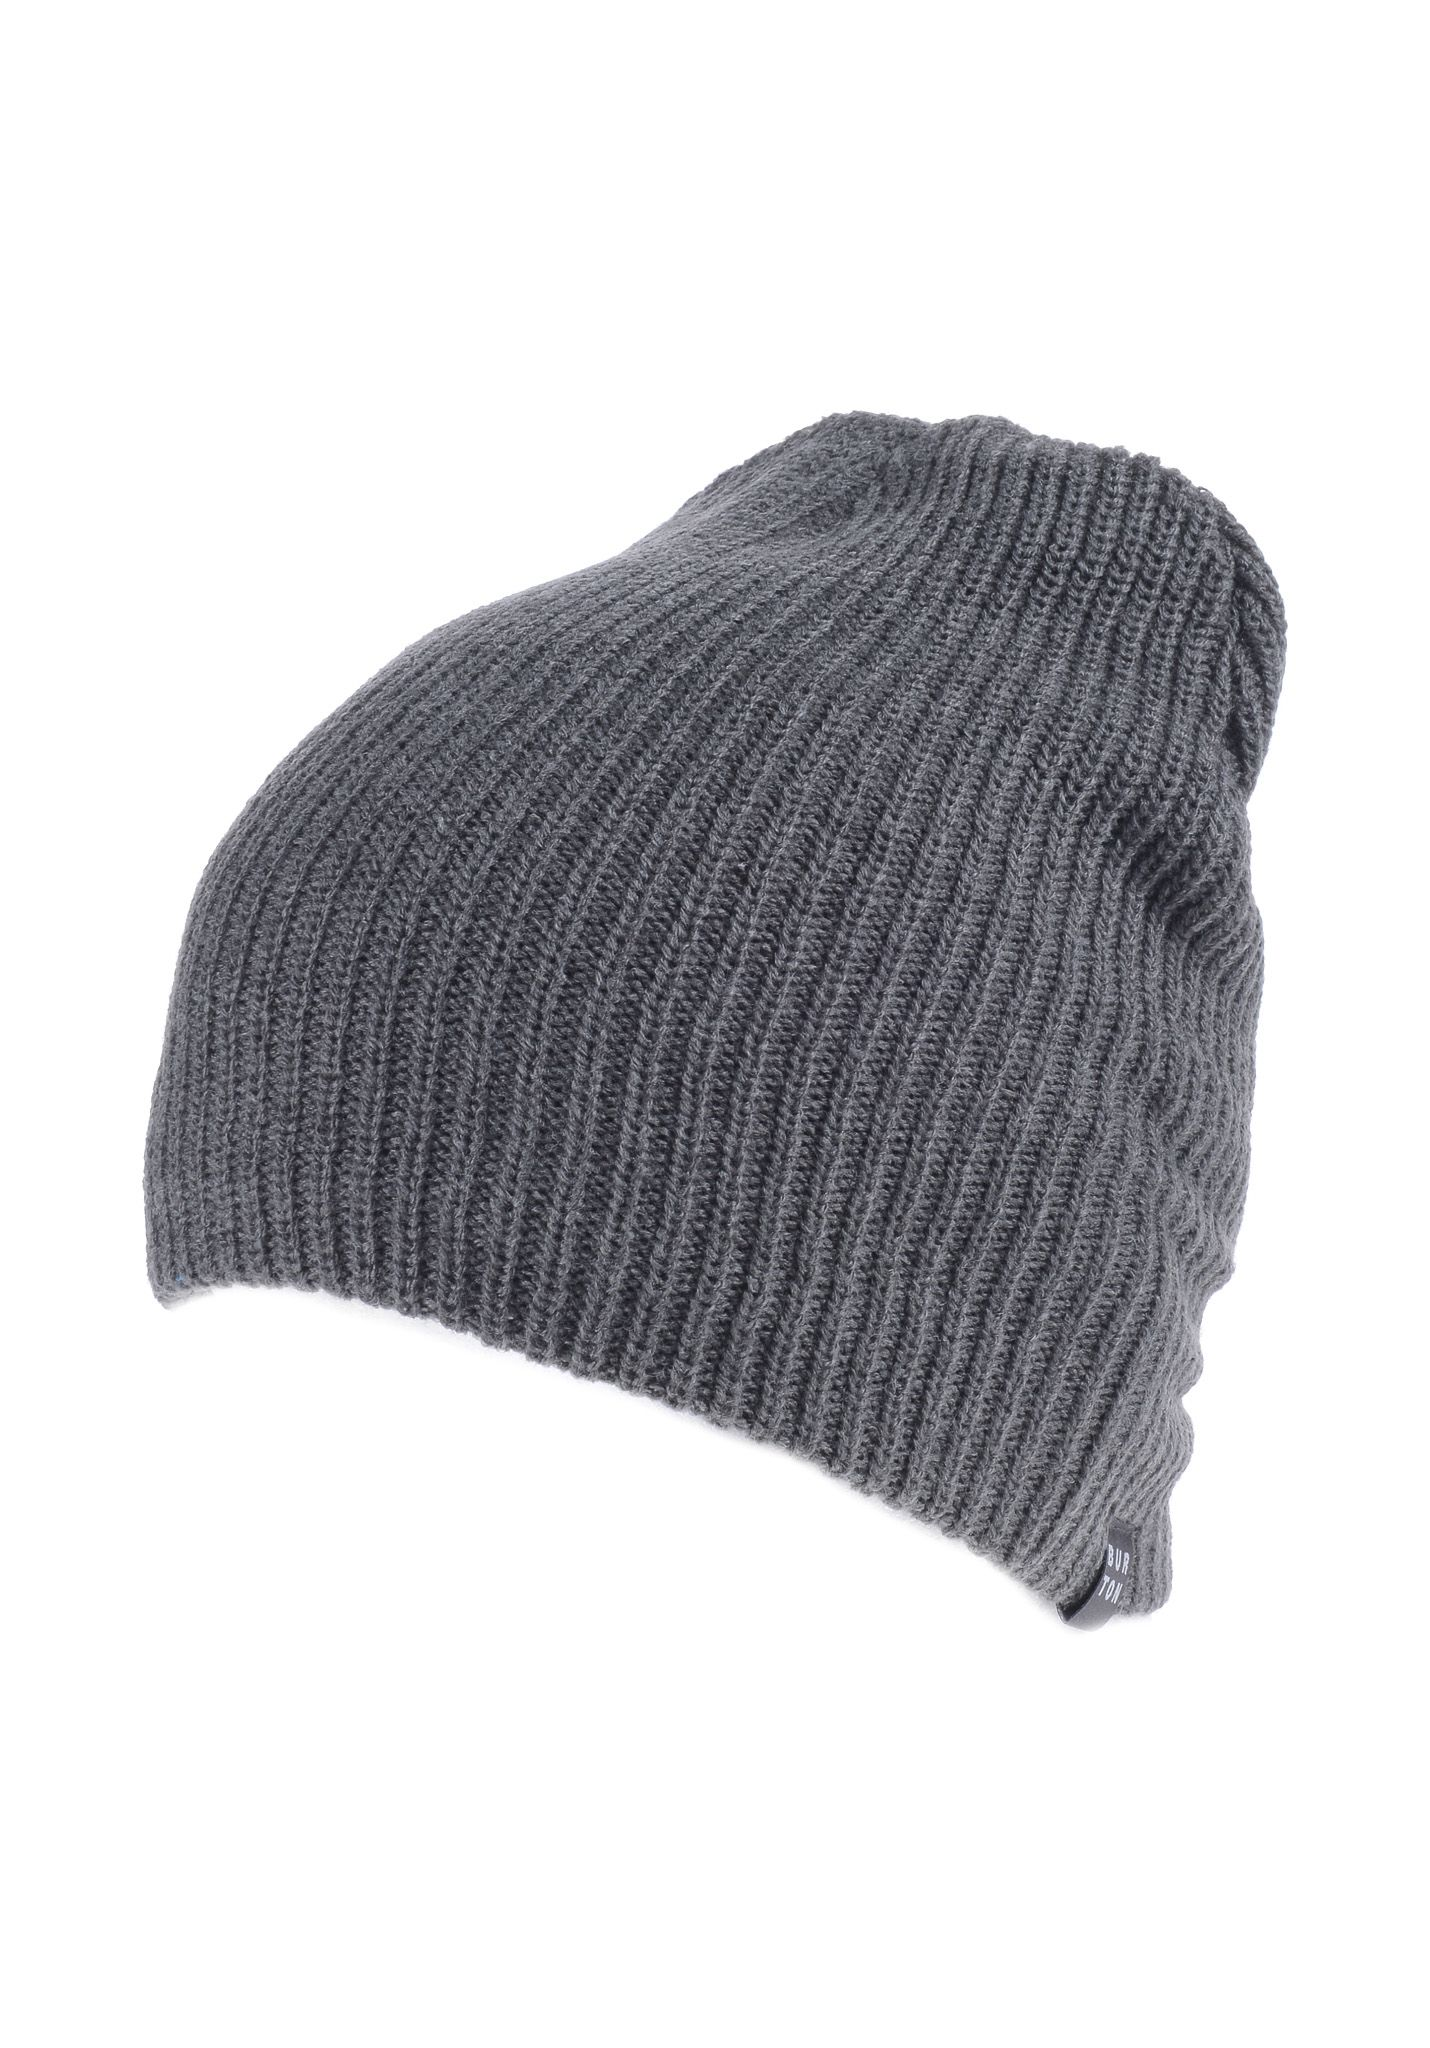 Burton All Day Long - Cappello per Uomo - Grigio - Planet Sports 278fcdebcdb4